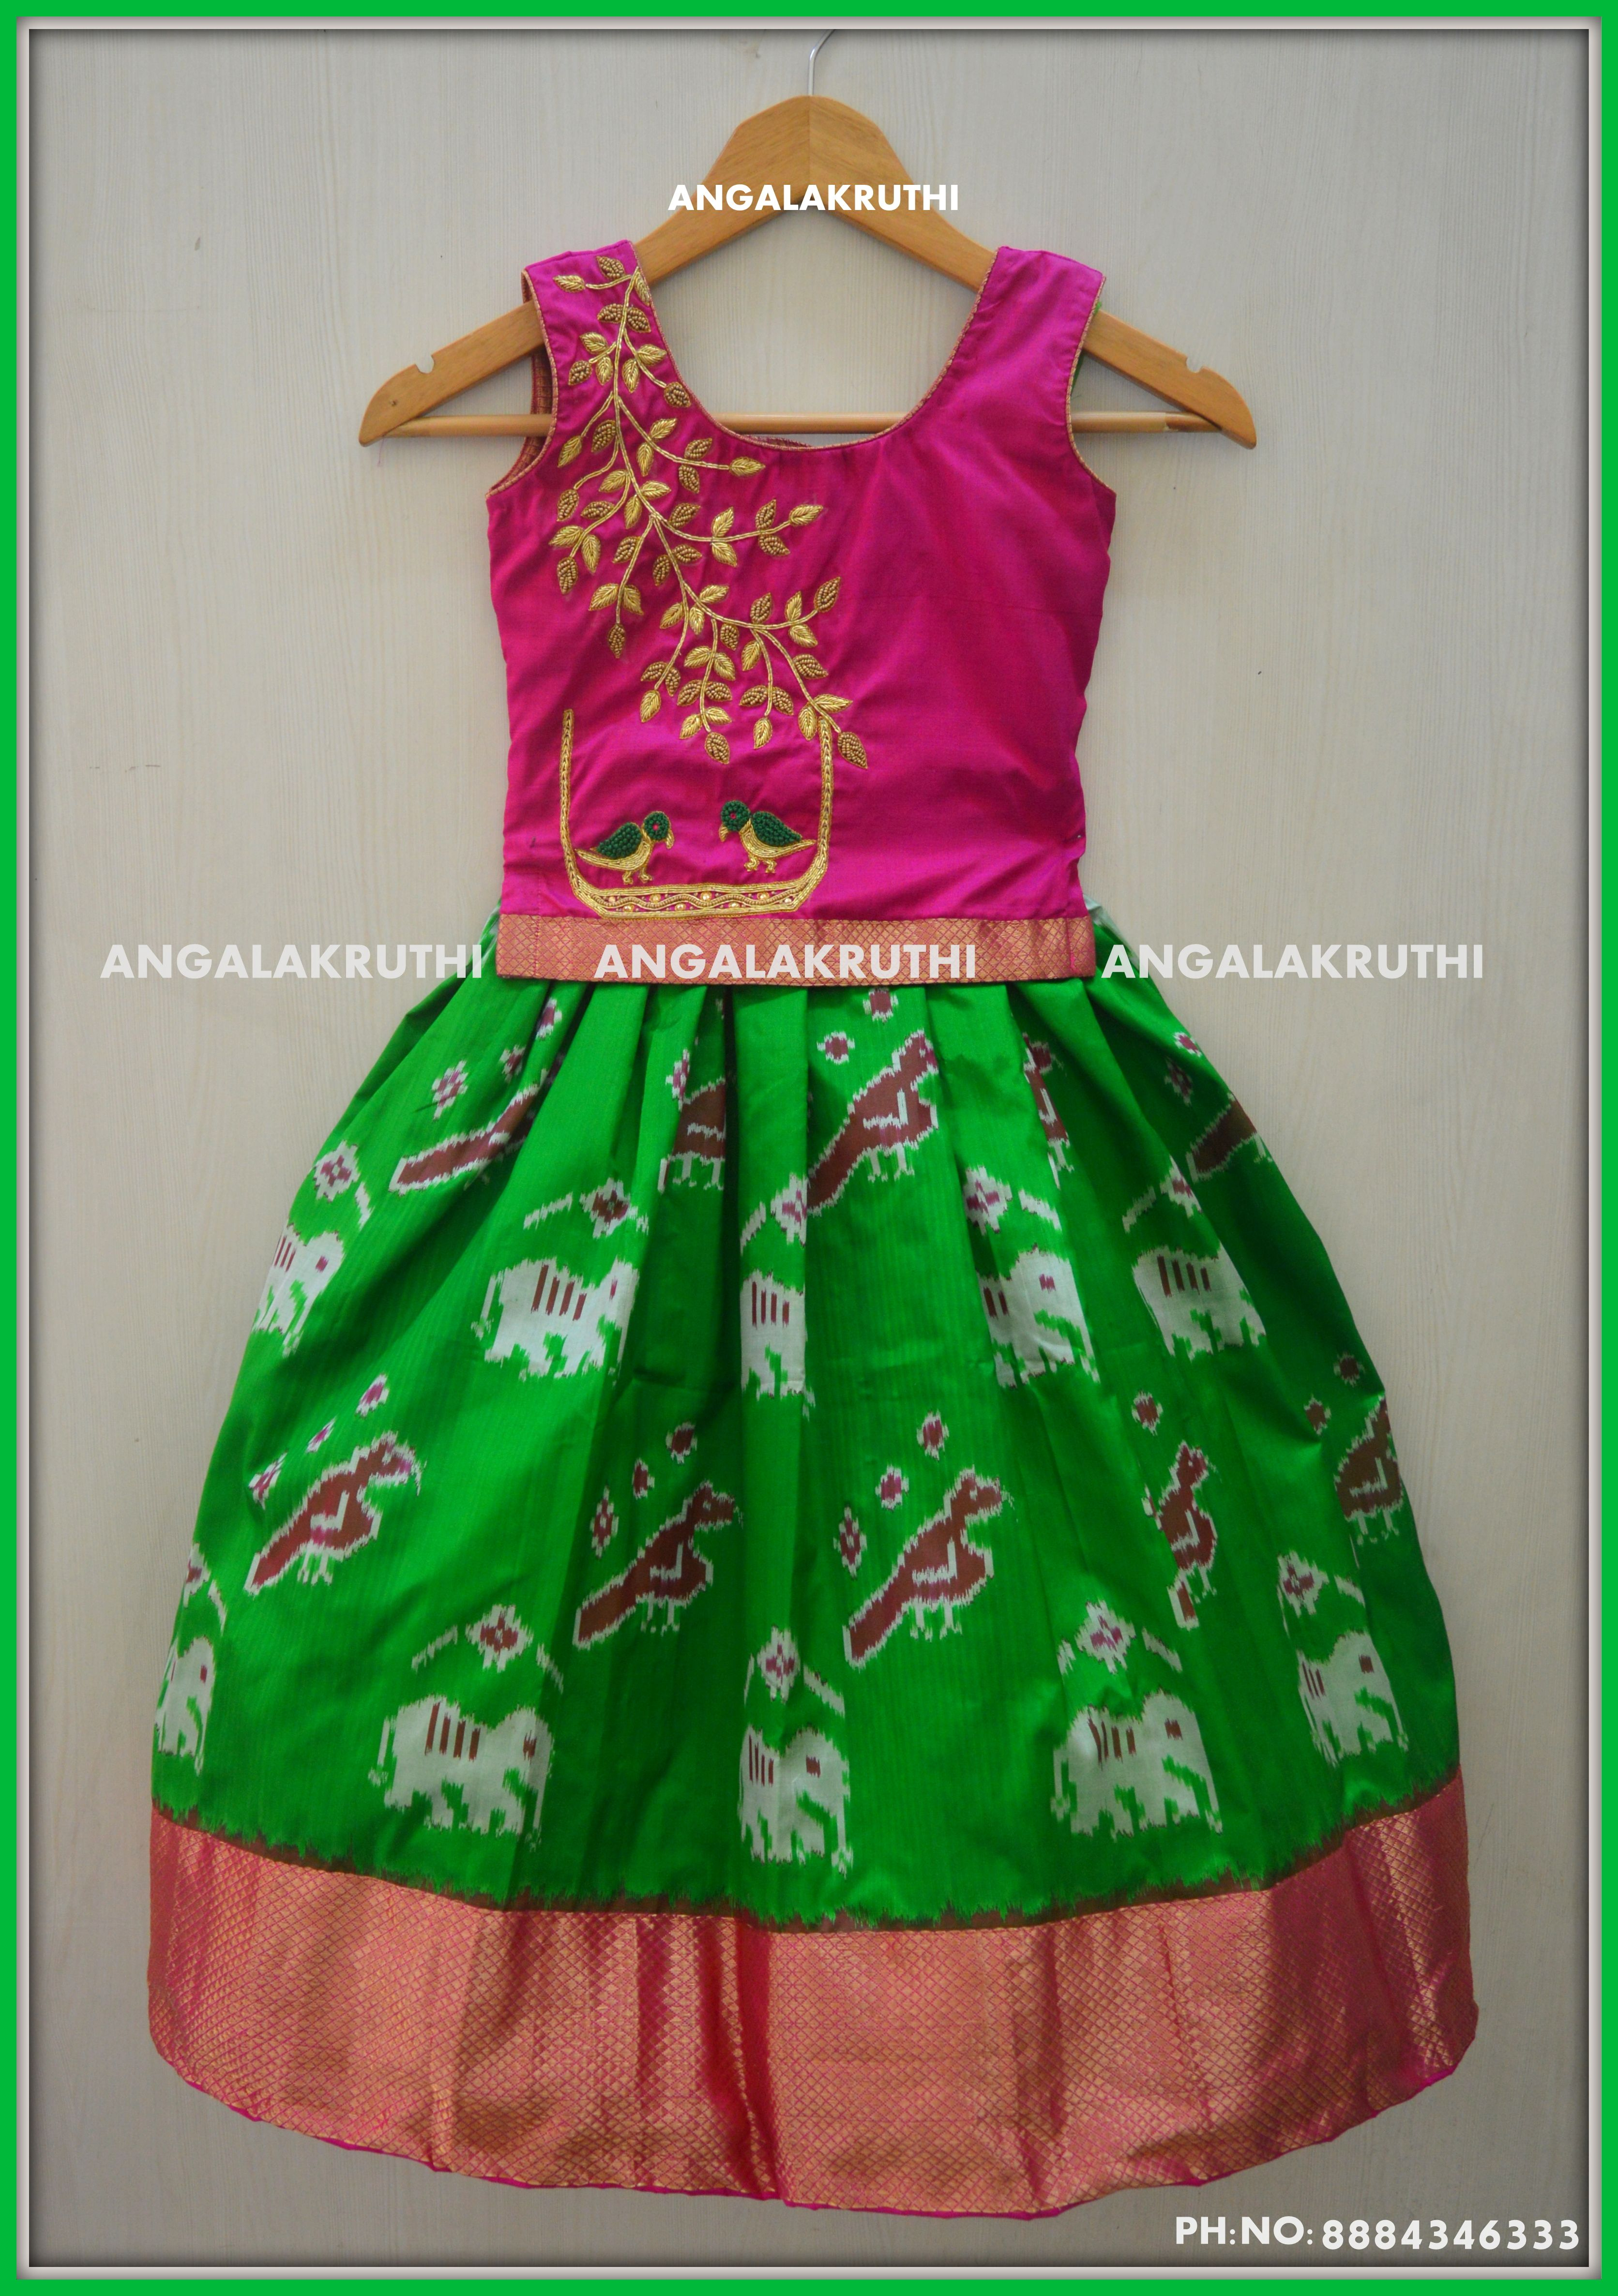 1fca1a444c86d6  Kids pattu lehenga designs with hand embroidery  Hand embroidery designs  for kids pattu pavada  Pattu pavada designs by Angalakruthi  watsapp 8884347333 ...